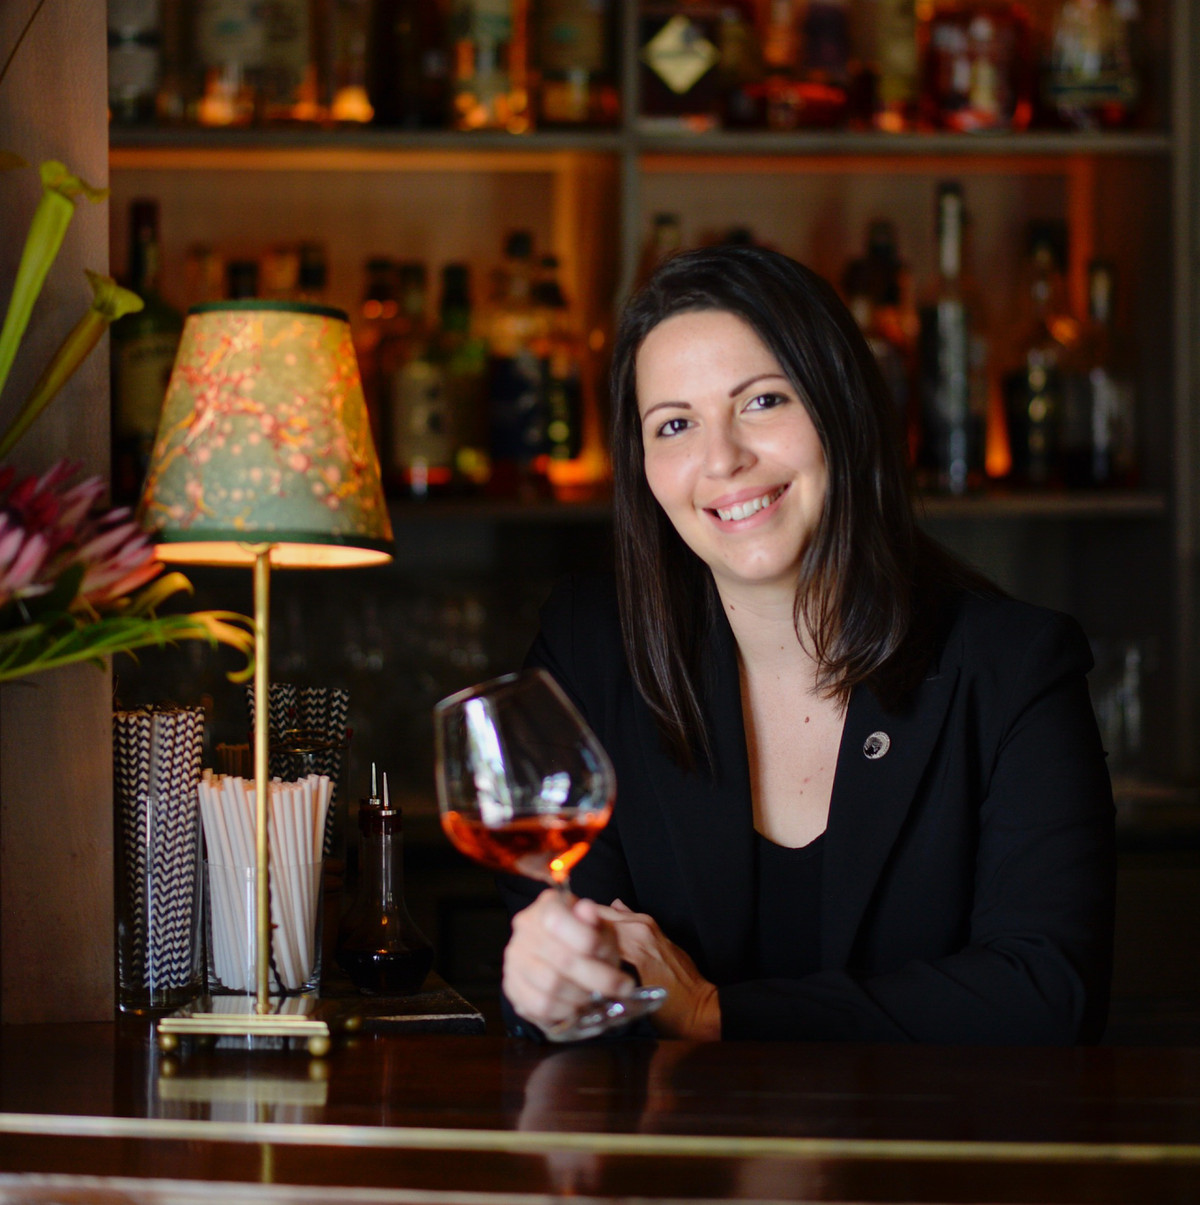 J.R. Ayala of Stay at Home Somm